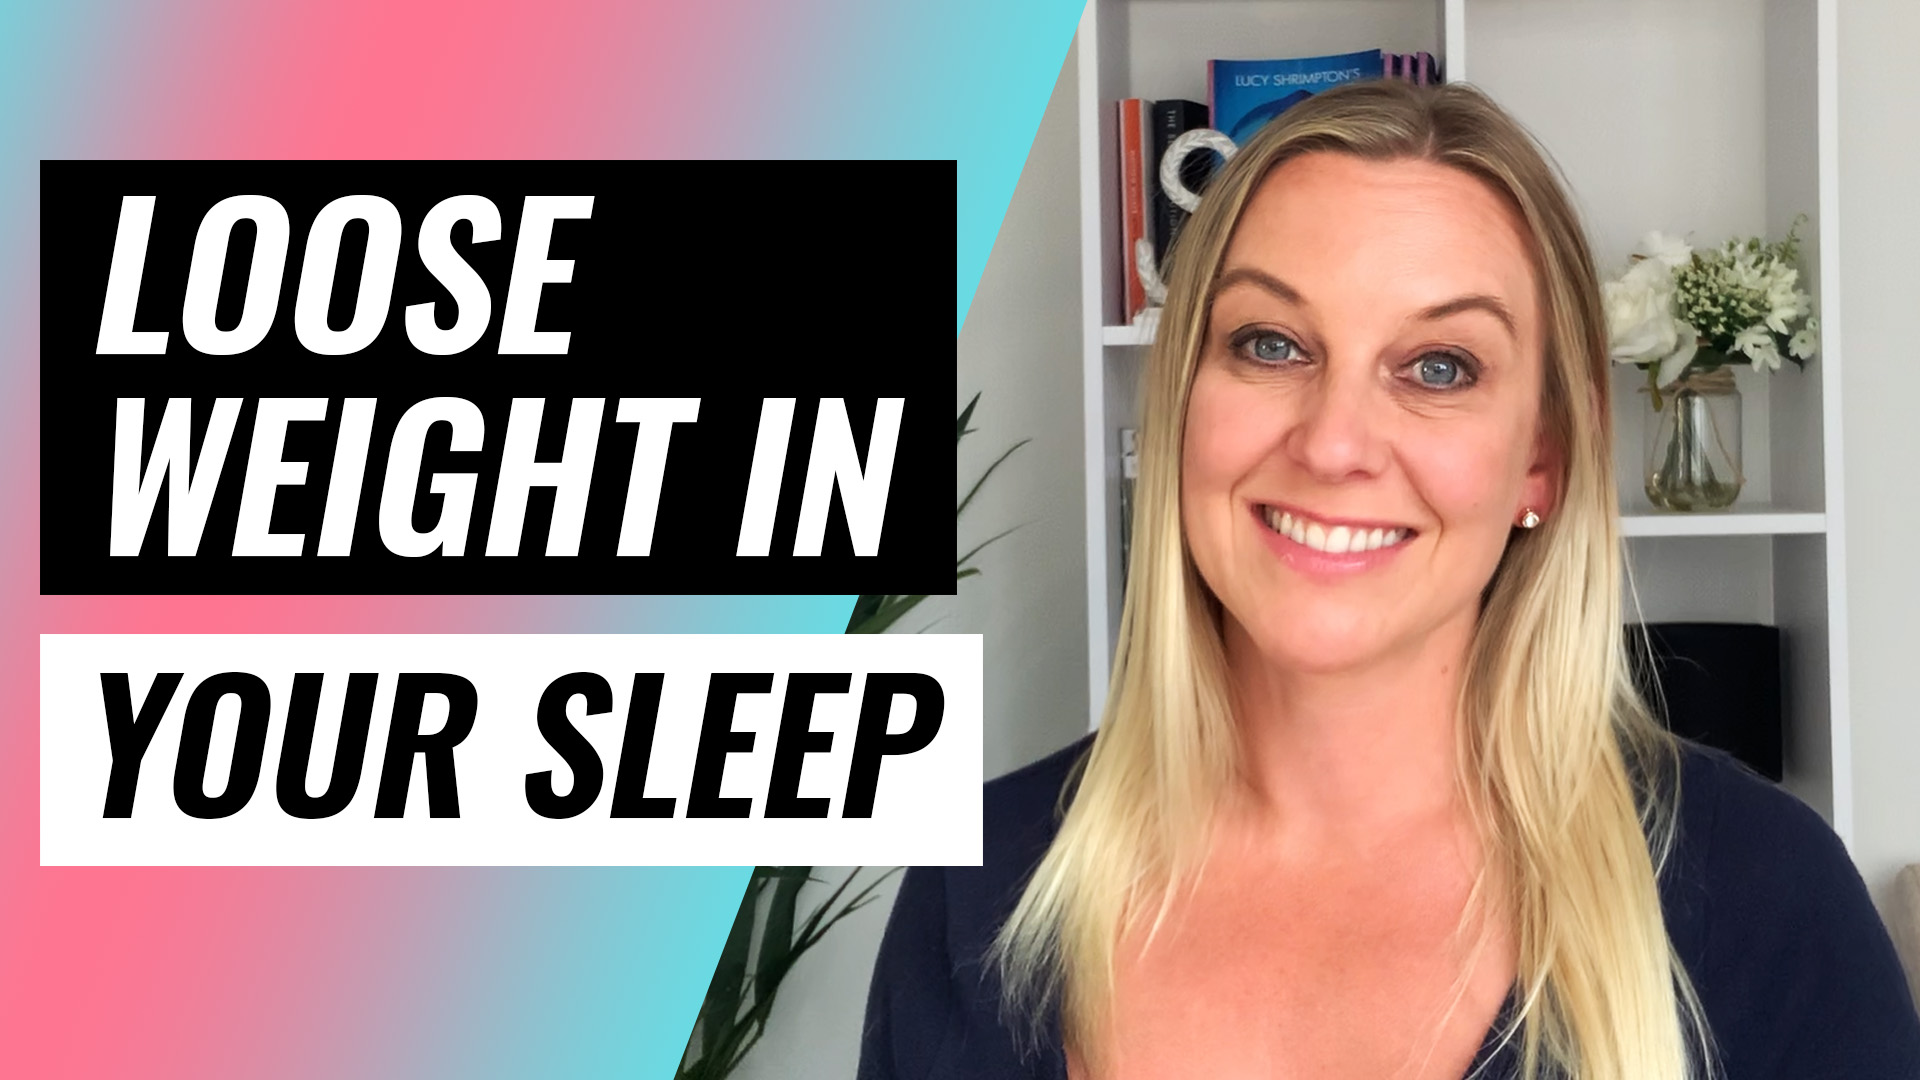 loose weight in your sleep video thumbnail